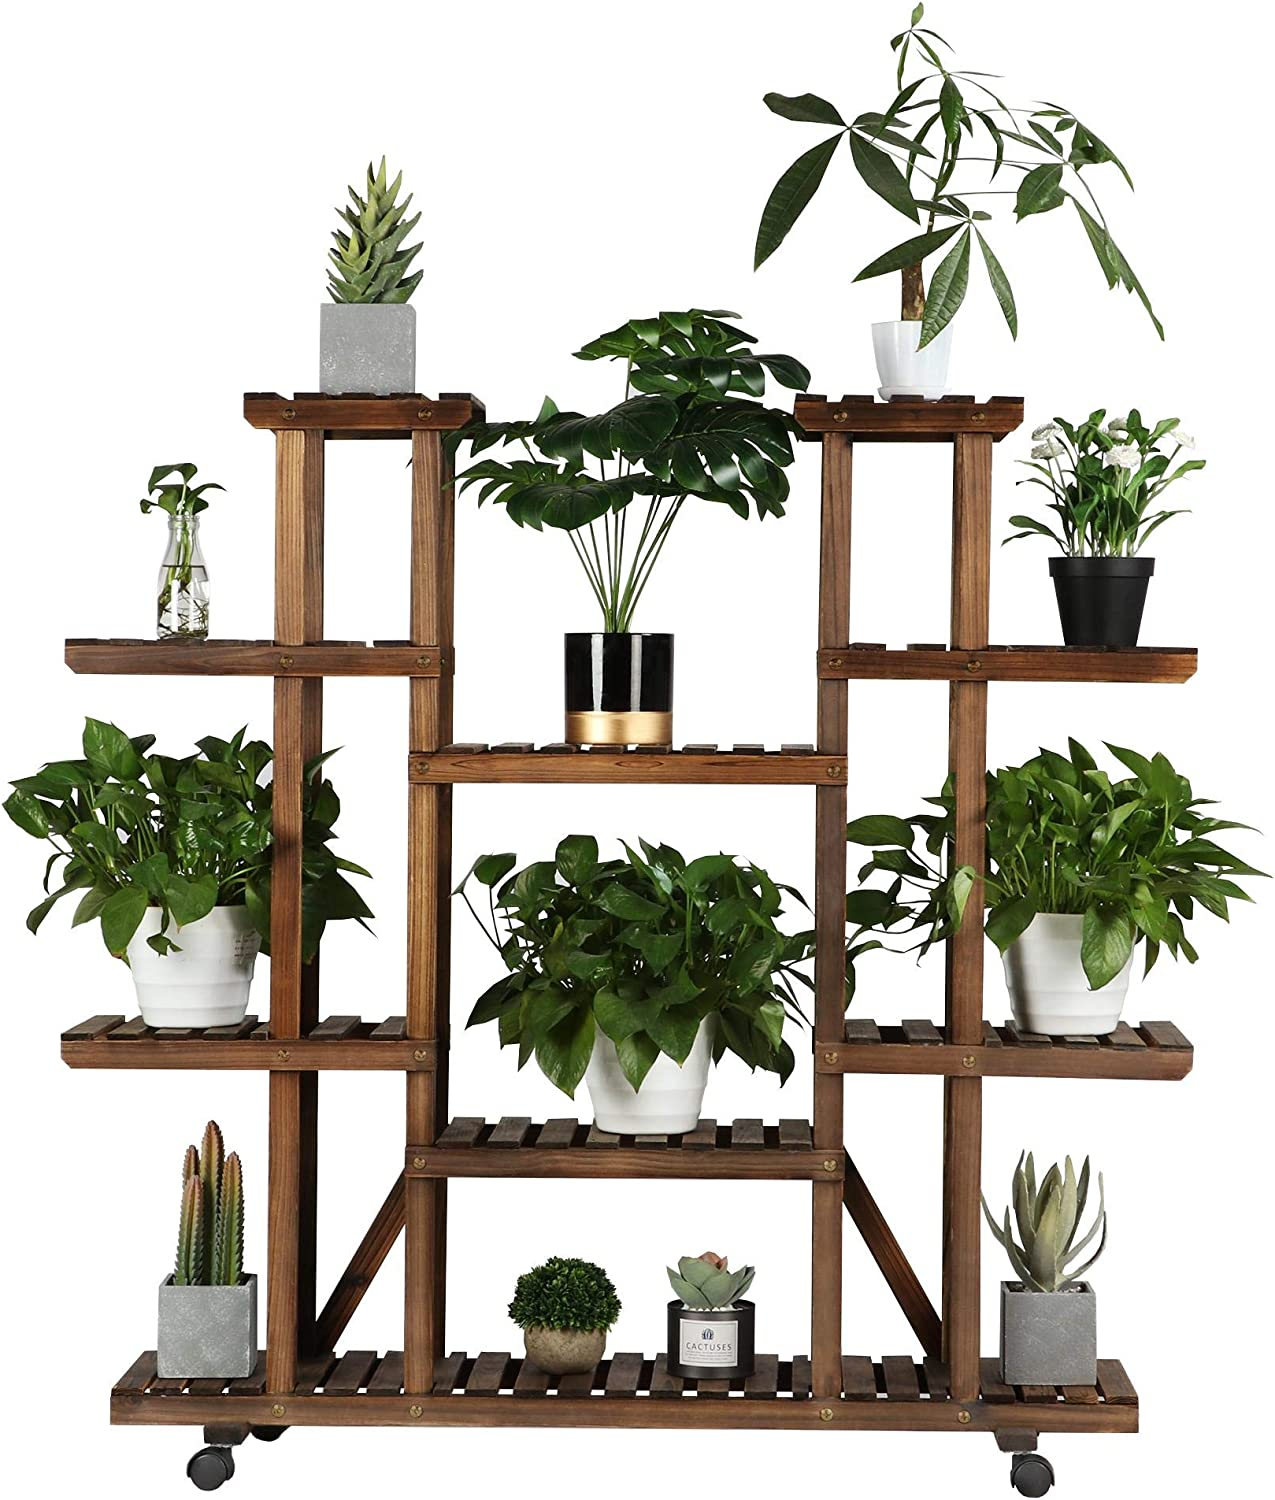 Details about  /Wooden Bookcases Plants Display Stand Shelf Bookshelf Storage Rack Balcony